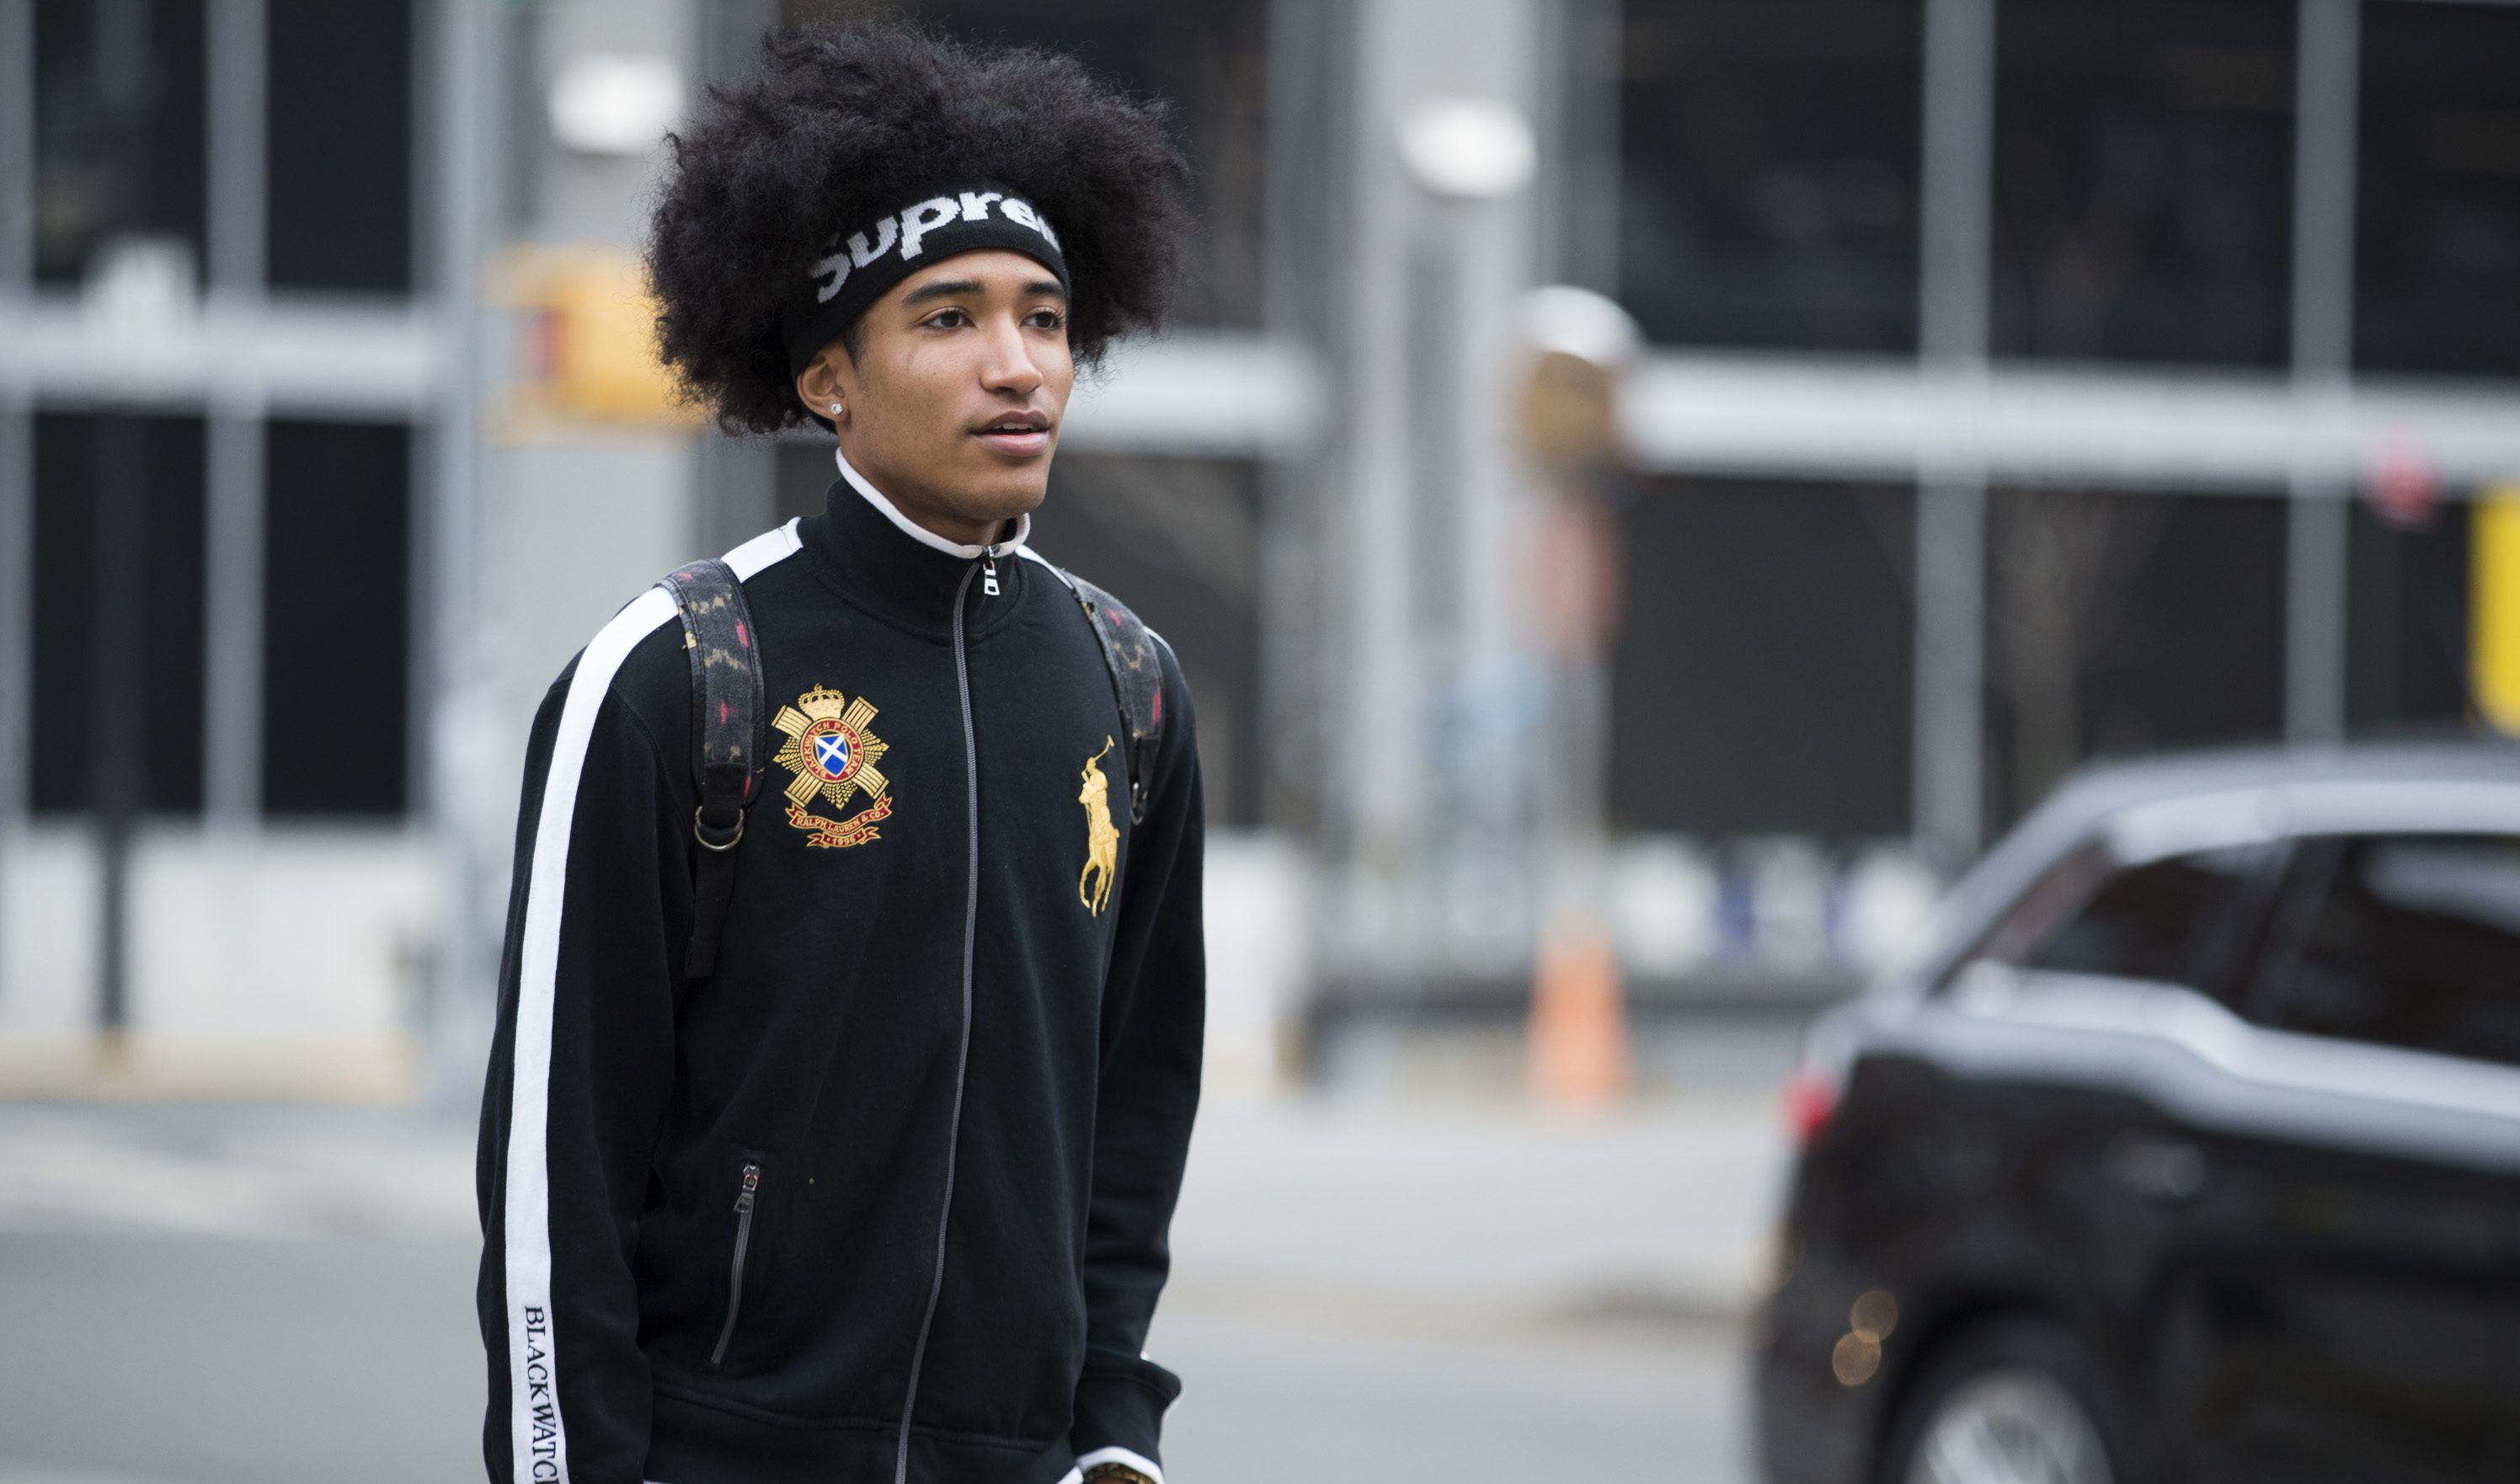 eaeeaea4 A model wears a Supreme headband, and black Ralph Lauren jacket during New  York Fashion